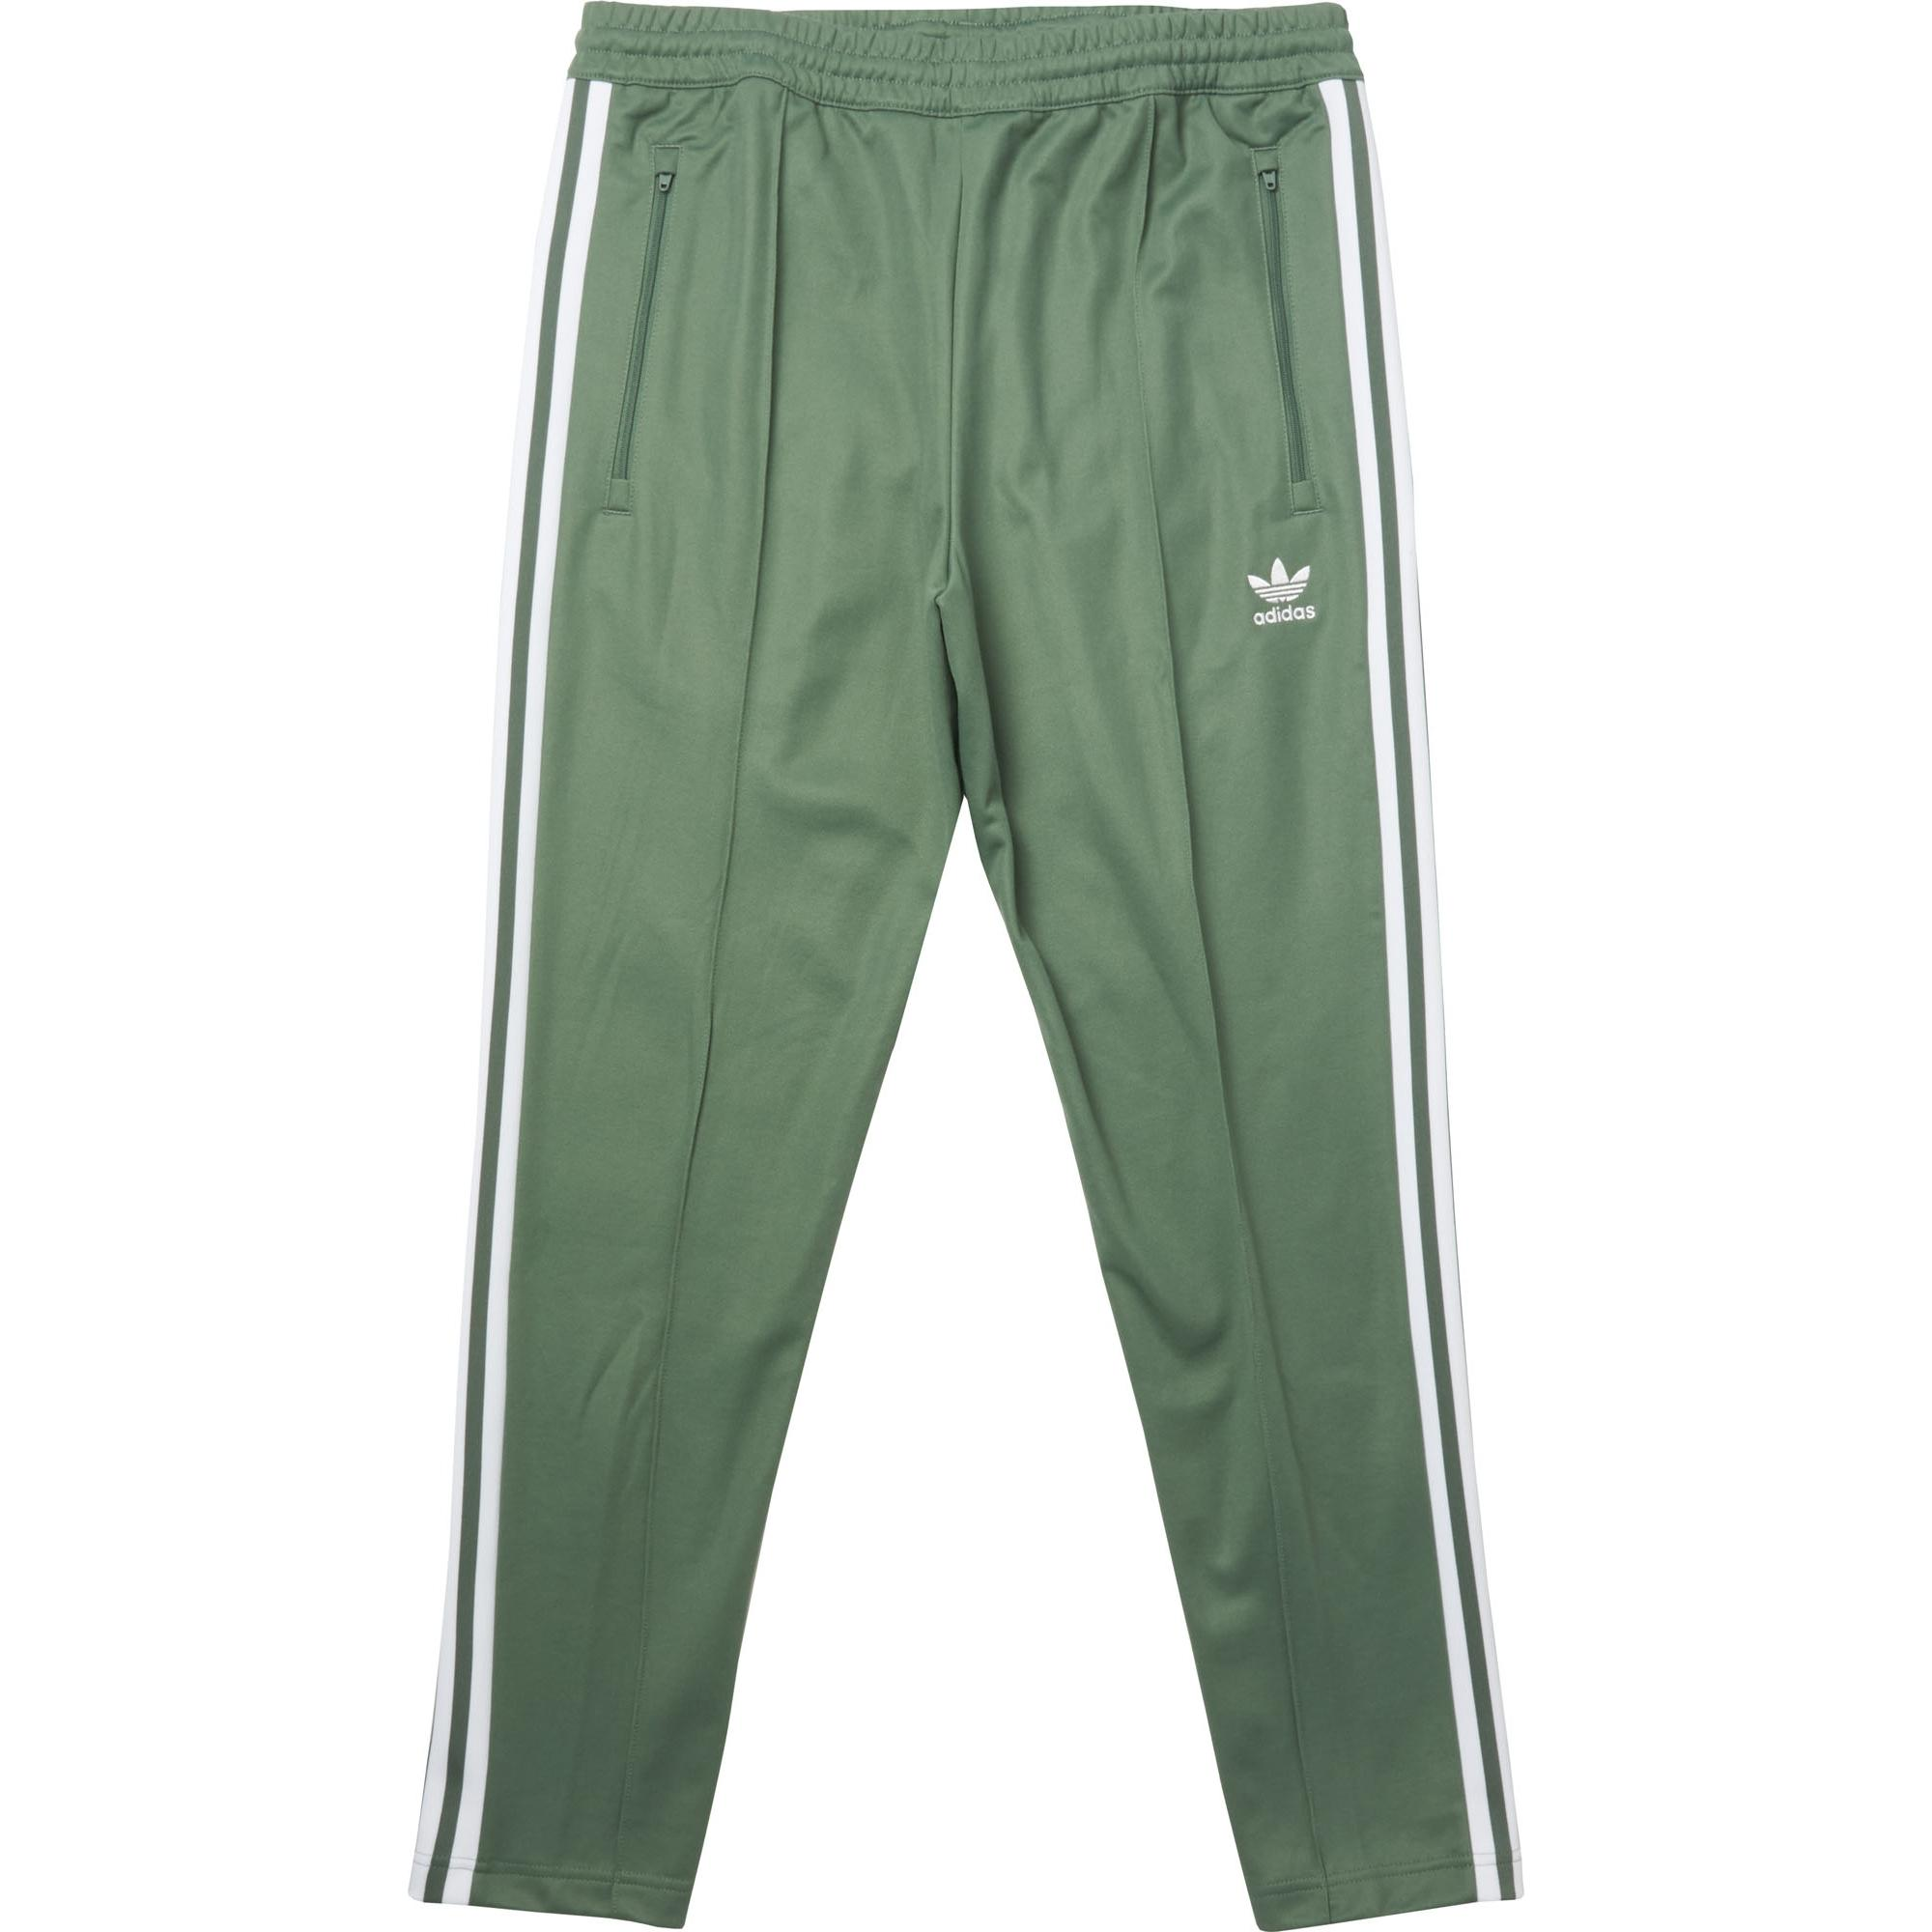 415e1a34bee adidas Originals Beckenbauer Track Pants - Trace Green in Green for ...